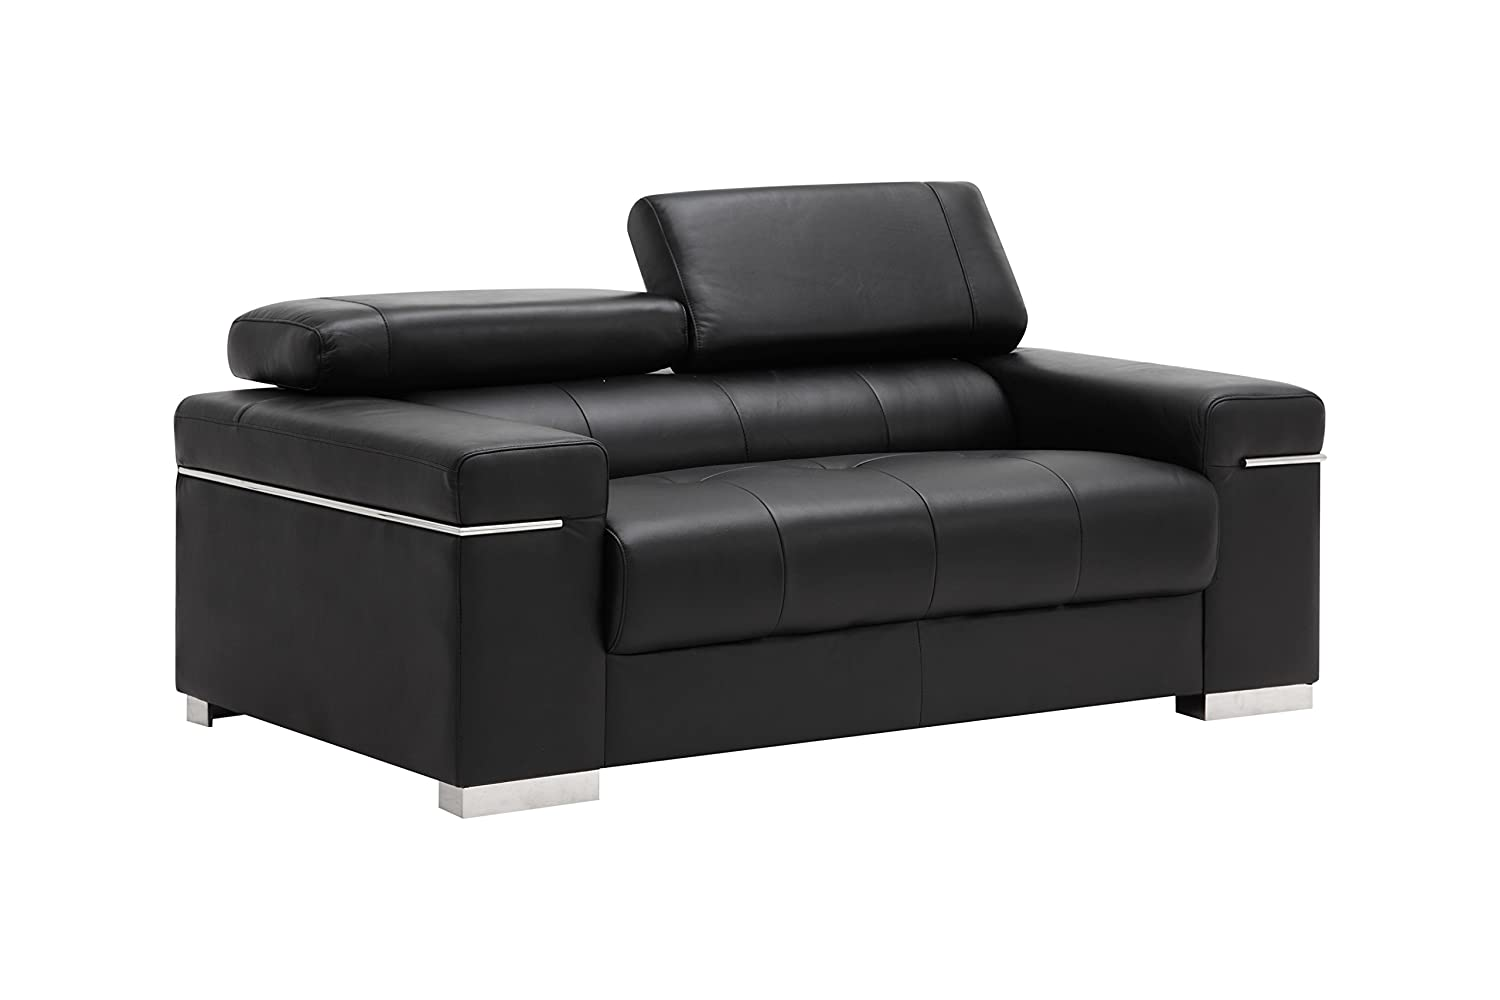 Amazon.com: J and M Furniture Soho Loveseat in Black Leather ...